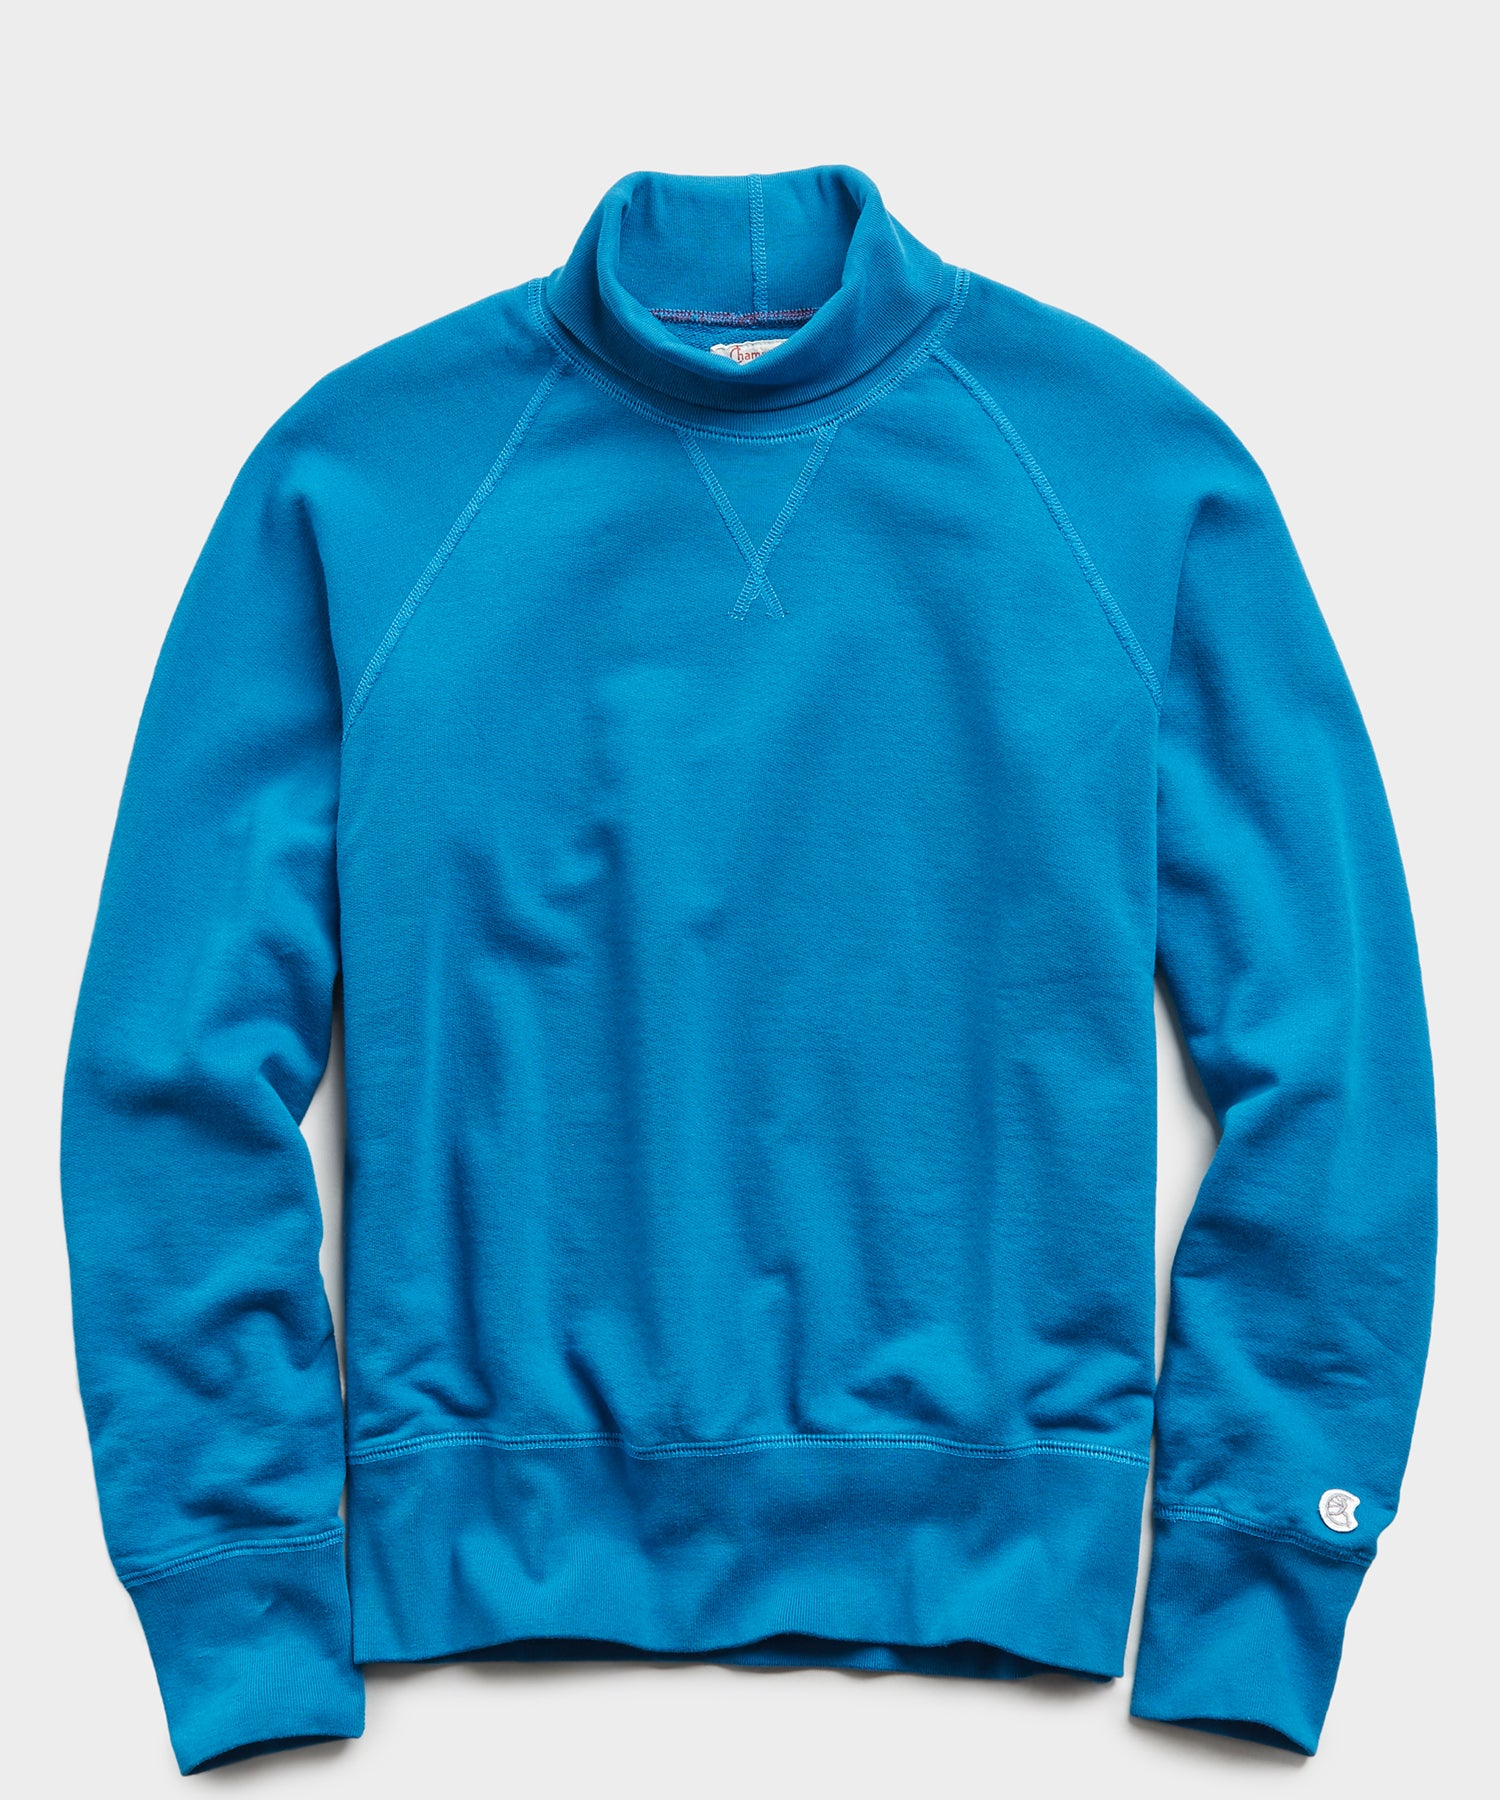 Lightweight Turtleneck Sweatshirt in Slate Teal